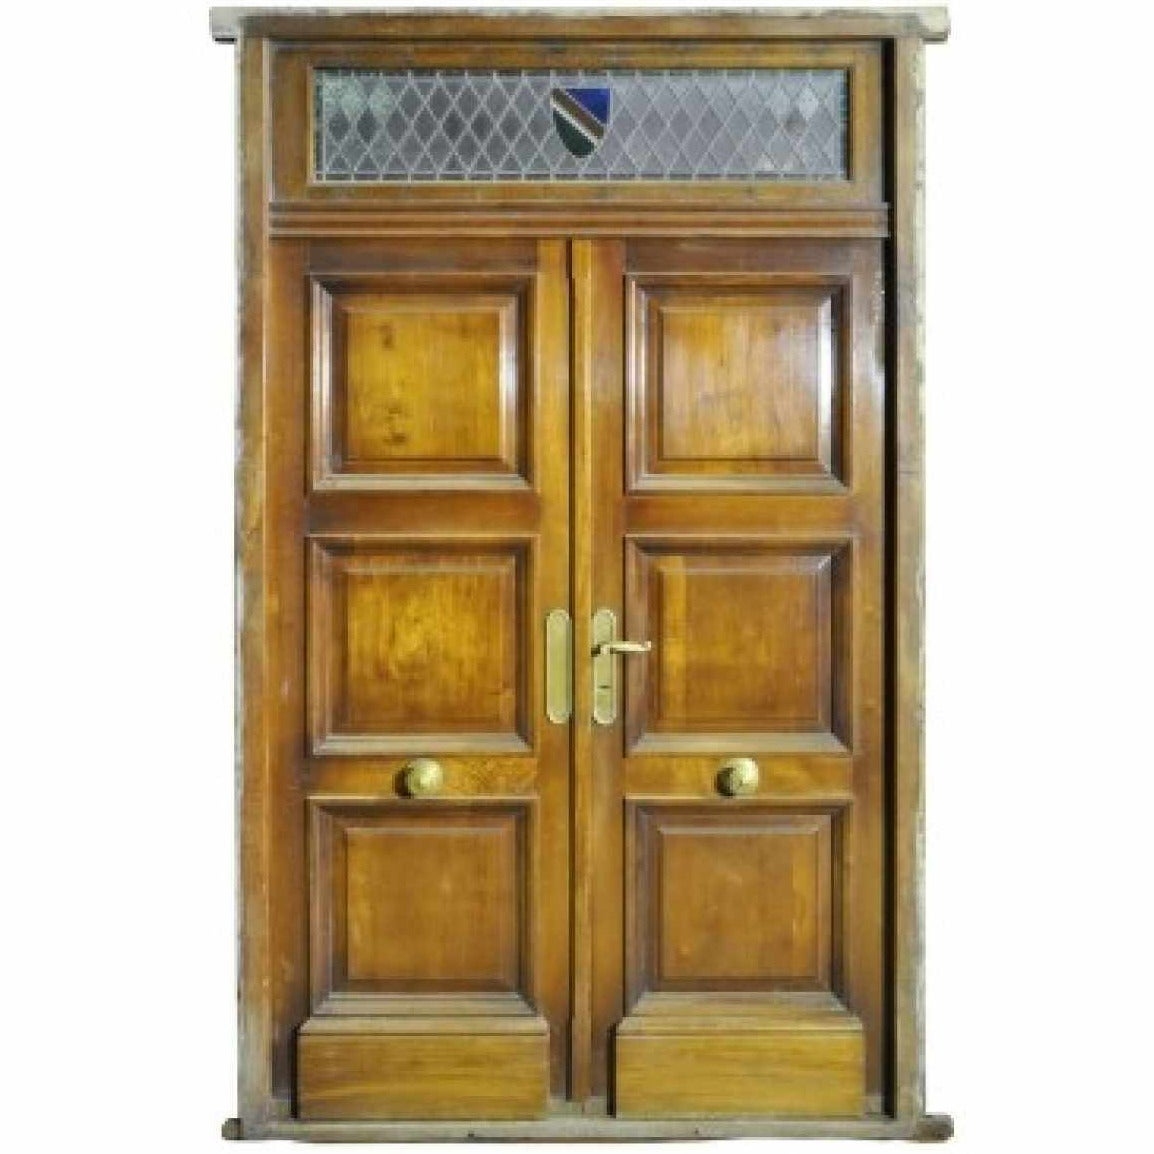 Antique Double Front Door With Stained Glass Transom At